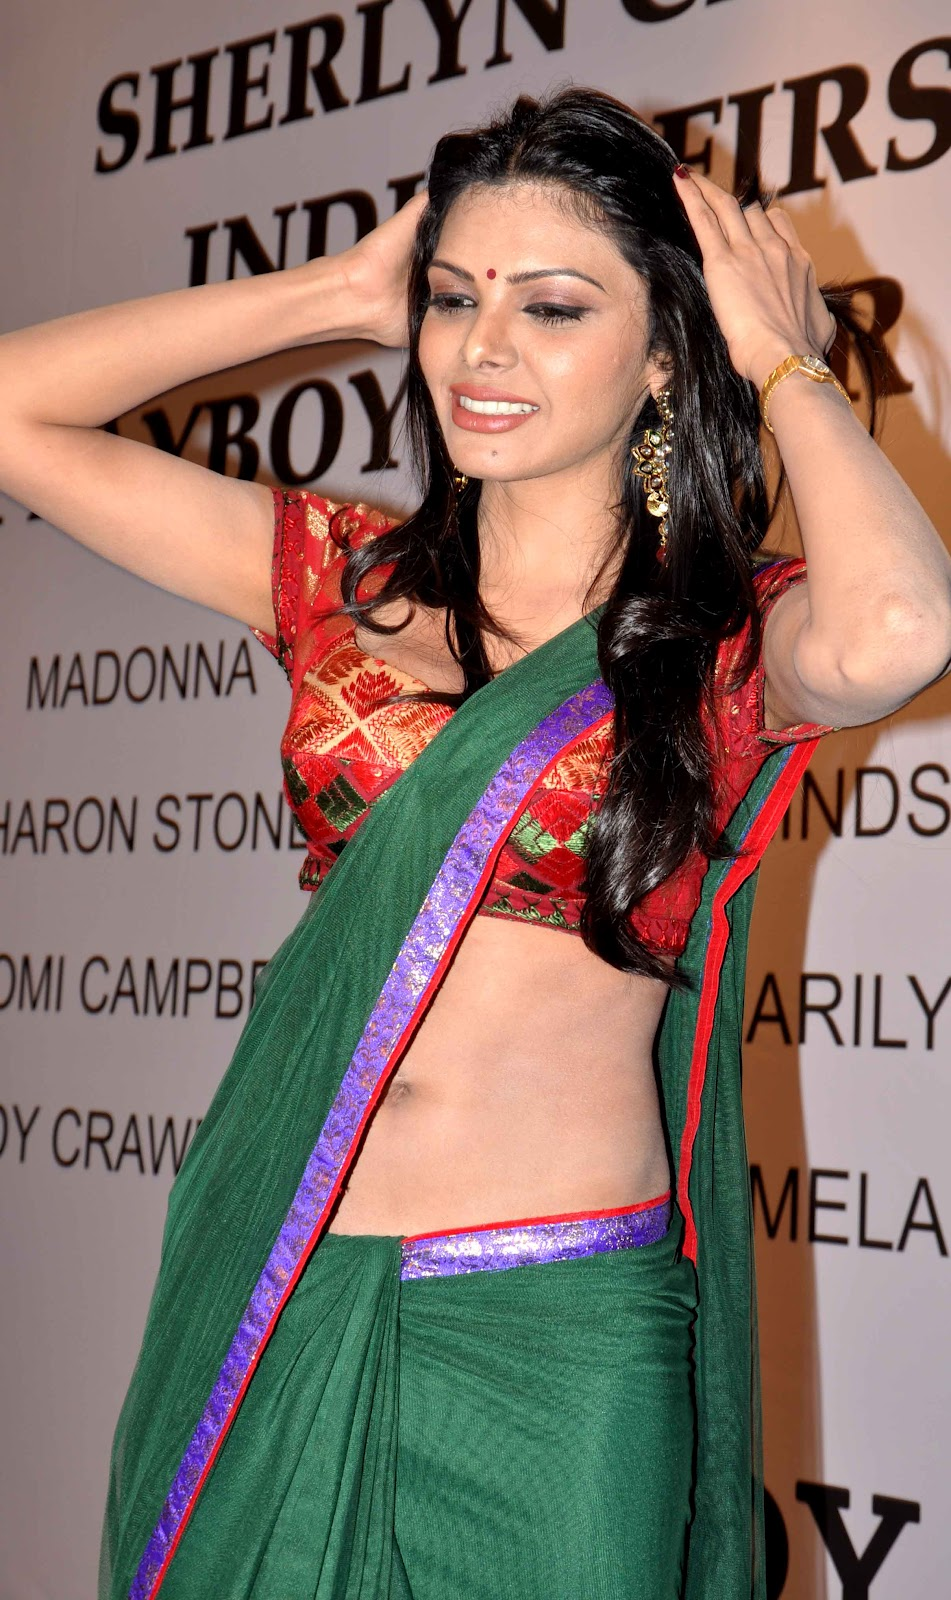 Tell Sherlyn chopra naked body apologise, but